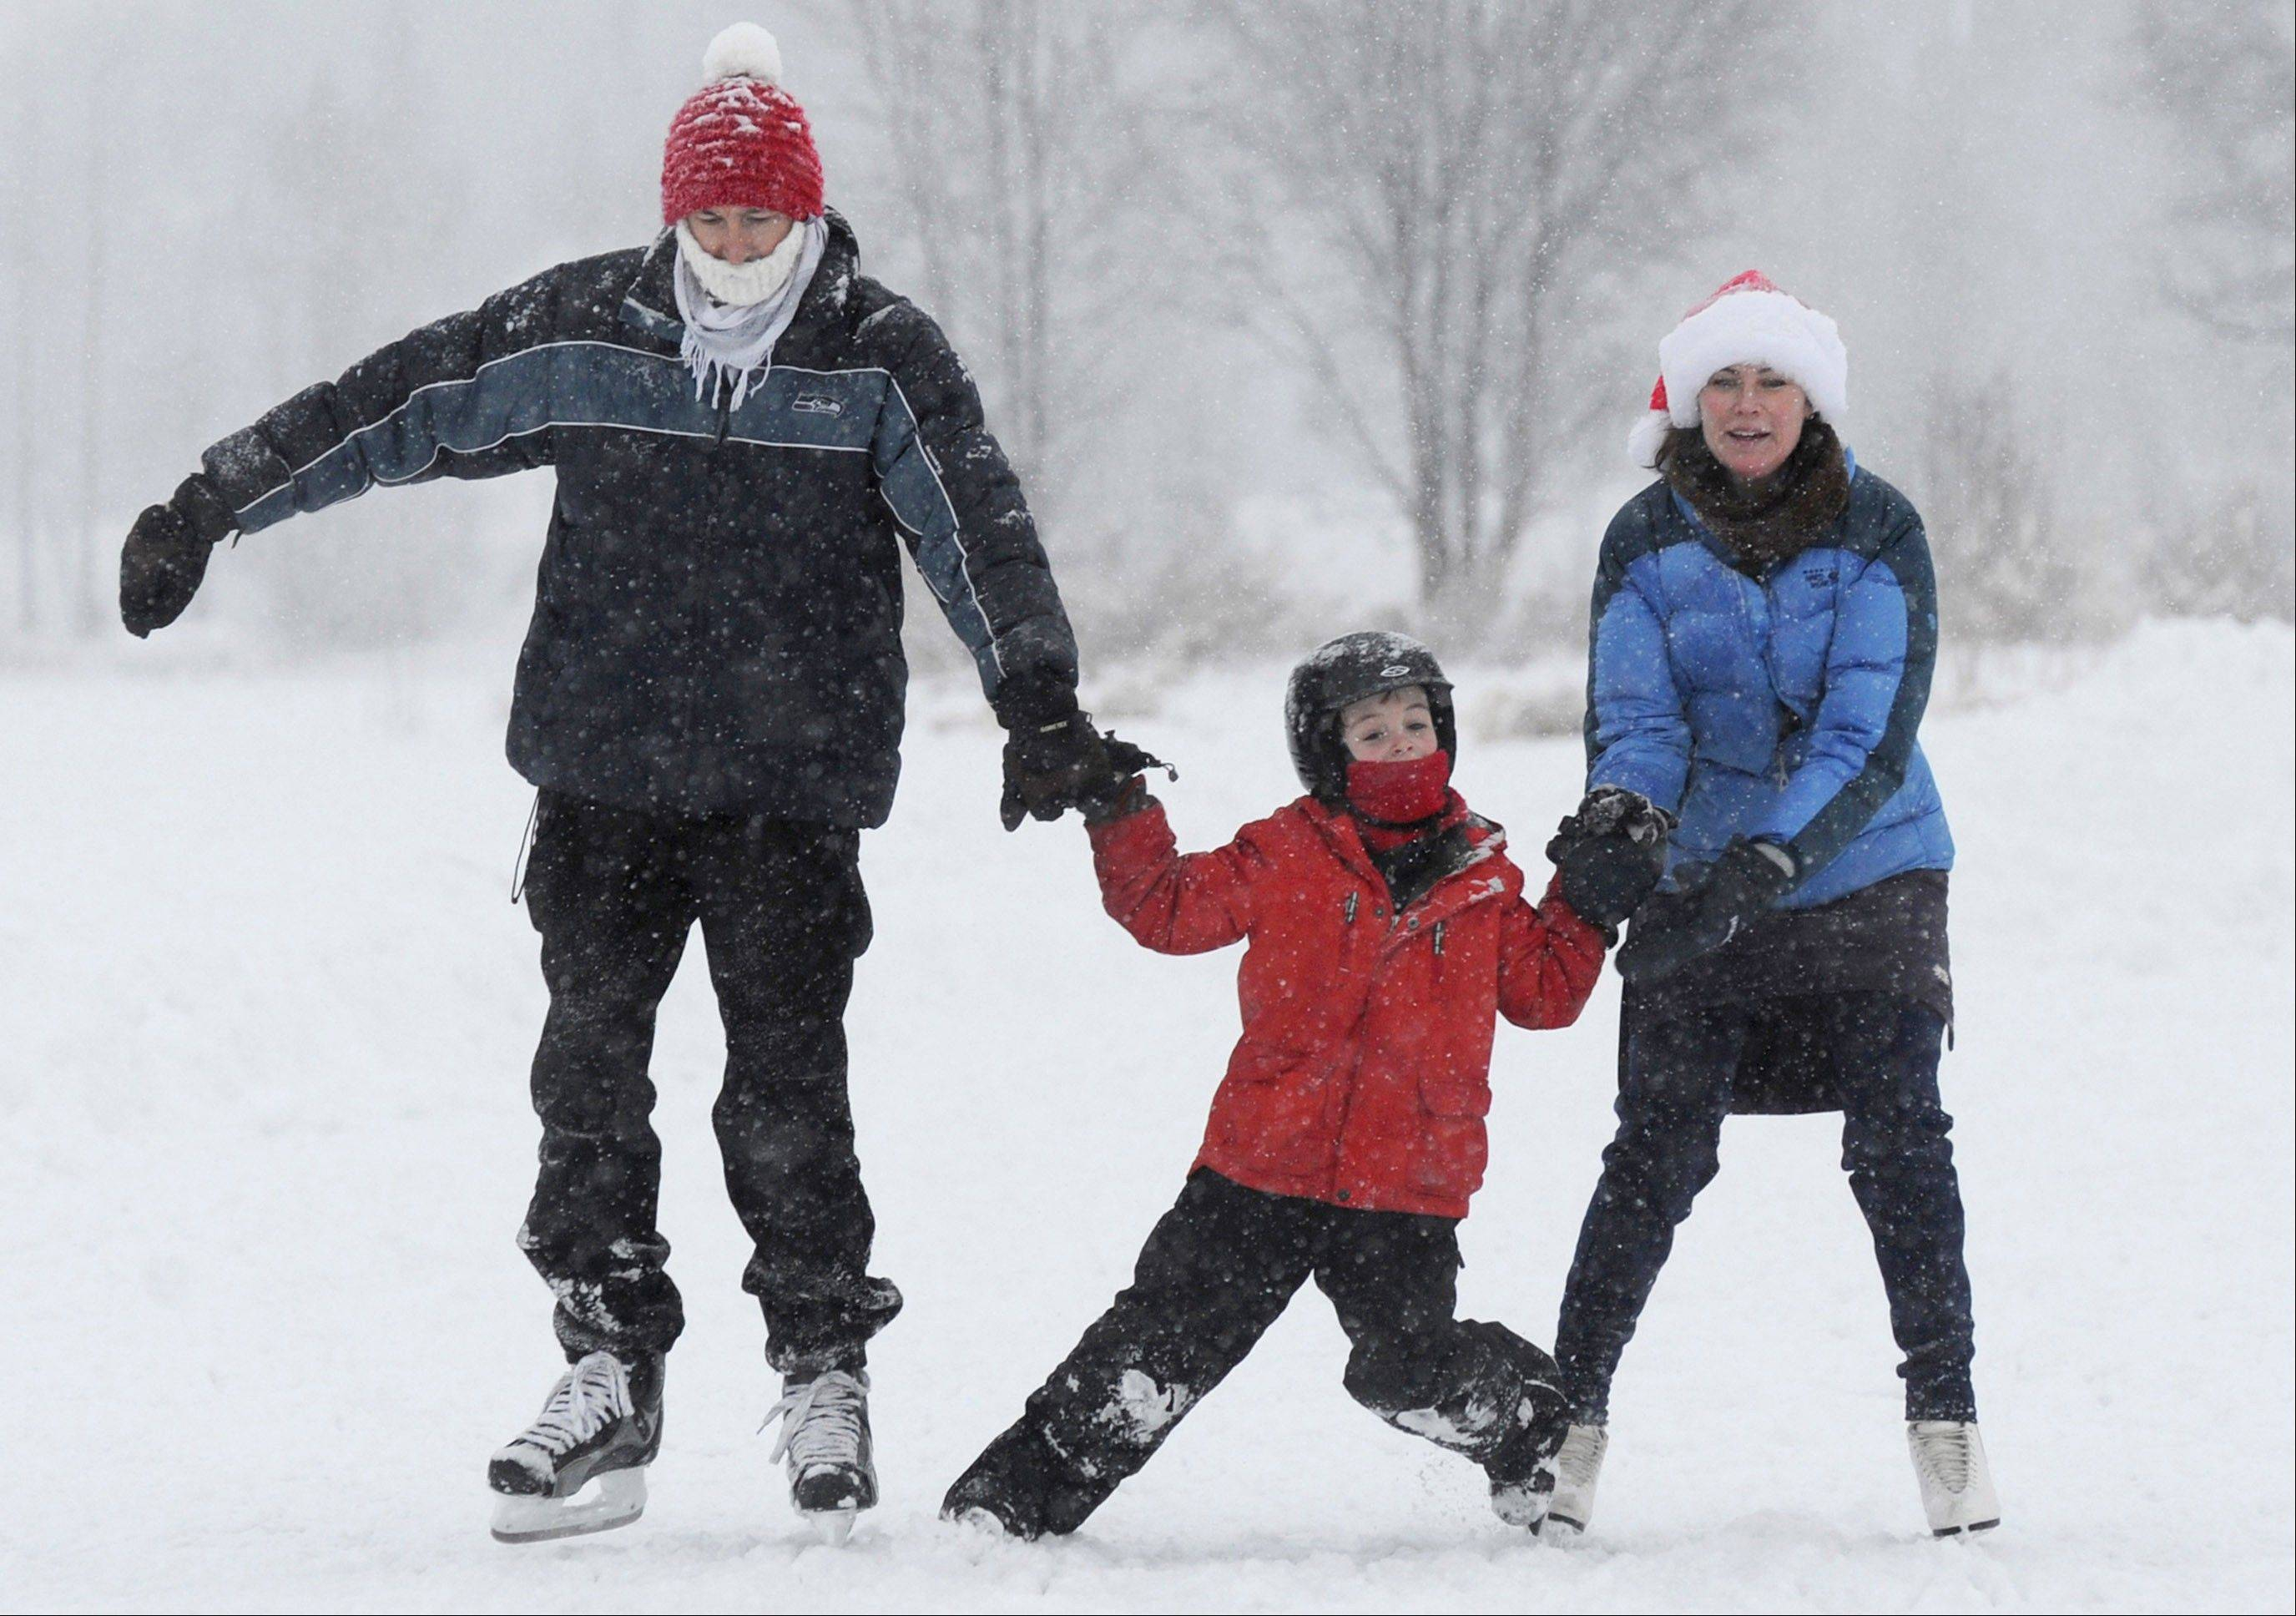 Kris Jones and his wife Robin Grendahl hang on to their son Erik Jones, 7, while ice skating at Westchester Lagoon in Anchorage during a snowstorm on Christmas Day, Tuesday, Dec. 25, 2012.